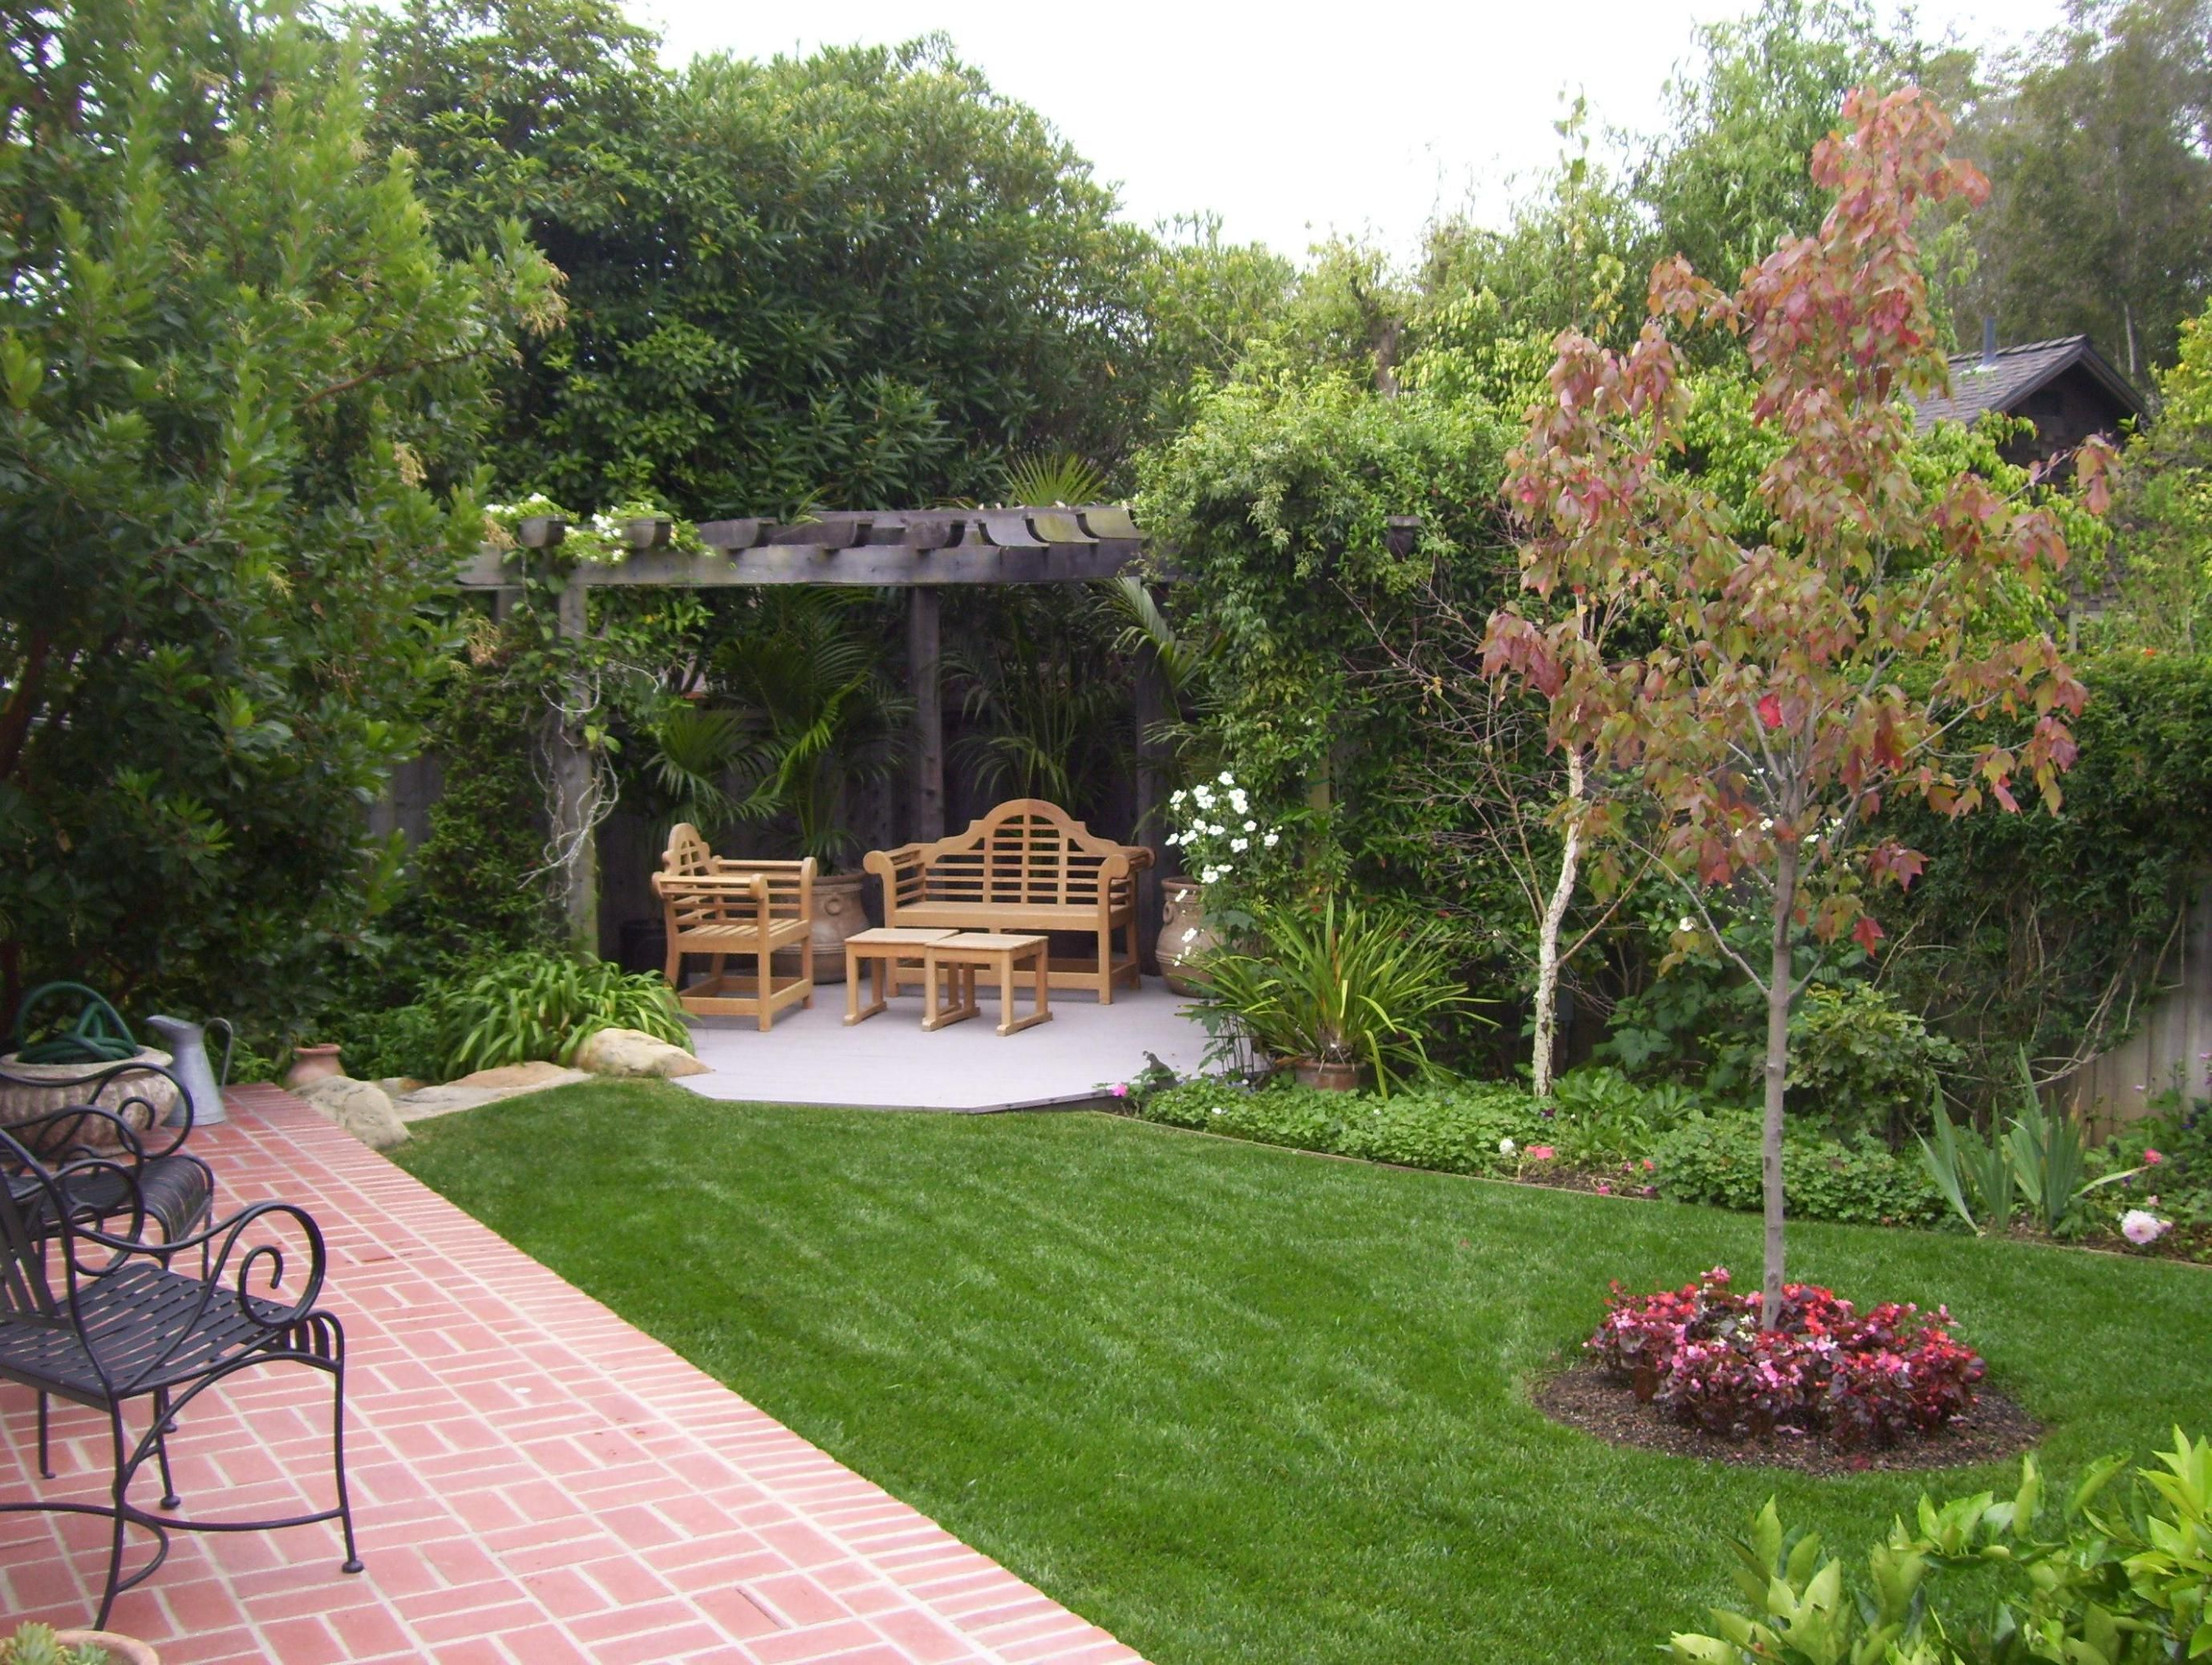 Backyard Landscaping On A Budget Outdoor Areas Awesome Backyard Ideas Cheap Small No Grass Landscaping With Decorating Diy Backyard Landscaping Outdoor Landscape Design Backyard Landscaping Designs